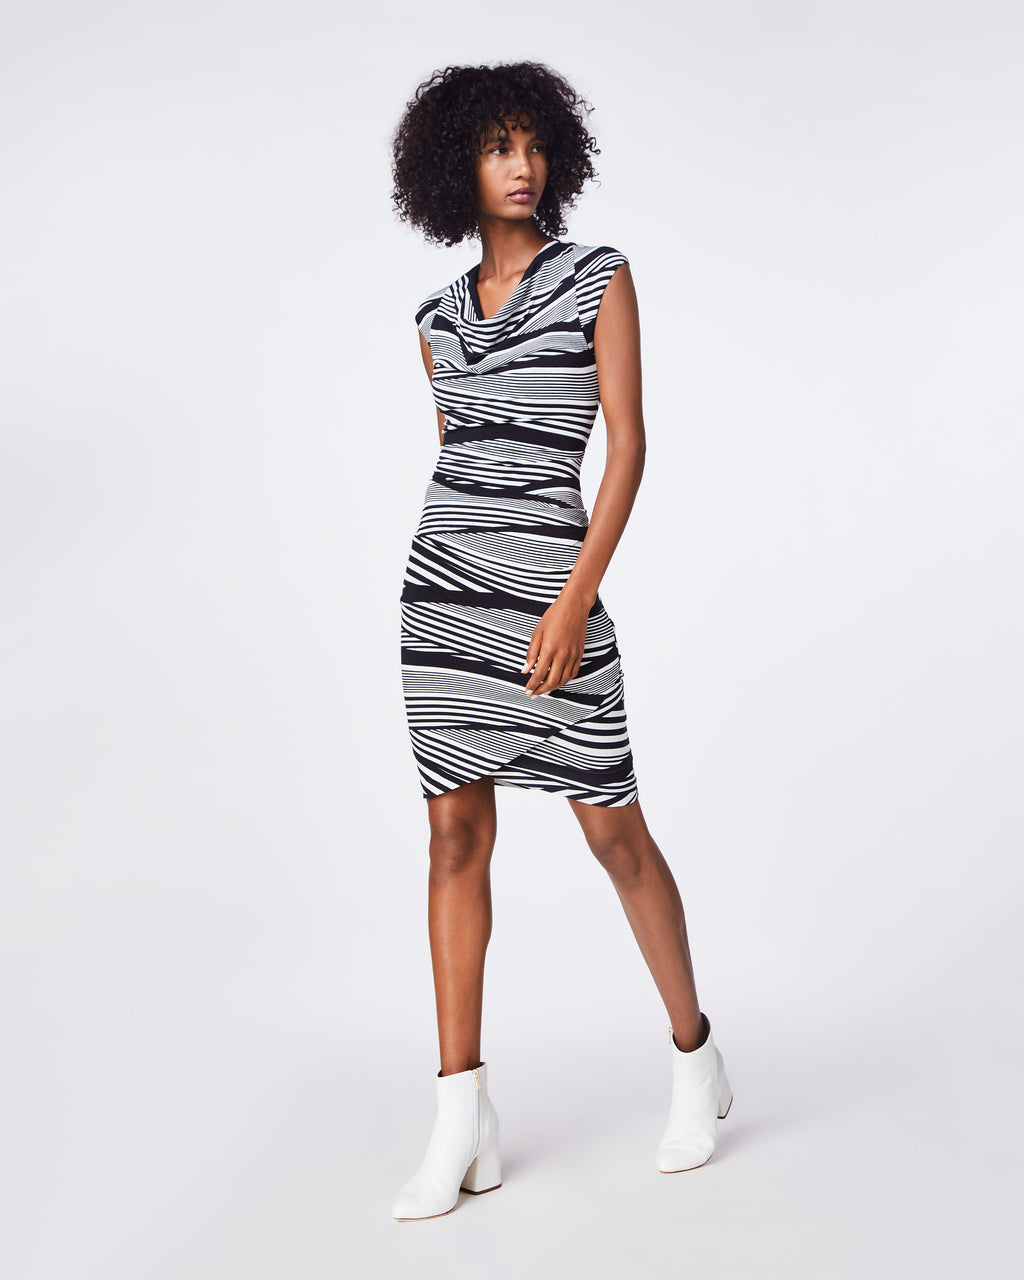 BH10433 - WAVY STRIPED COWL NECK ASYMMETRICAL DRESS - dresses - short - SLEEVELESS WITH A COWL NECK, THIS FITTED DRESS IS A FLATTERING LOOK.